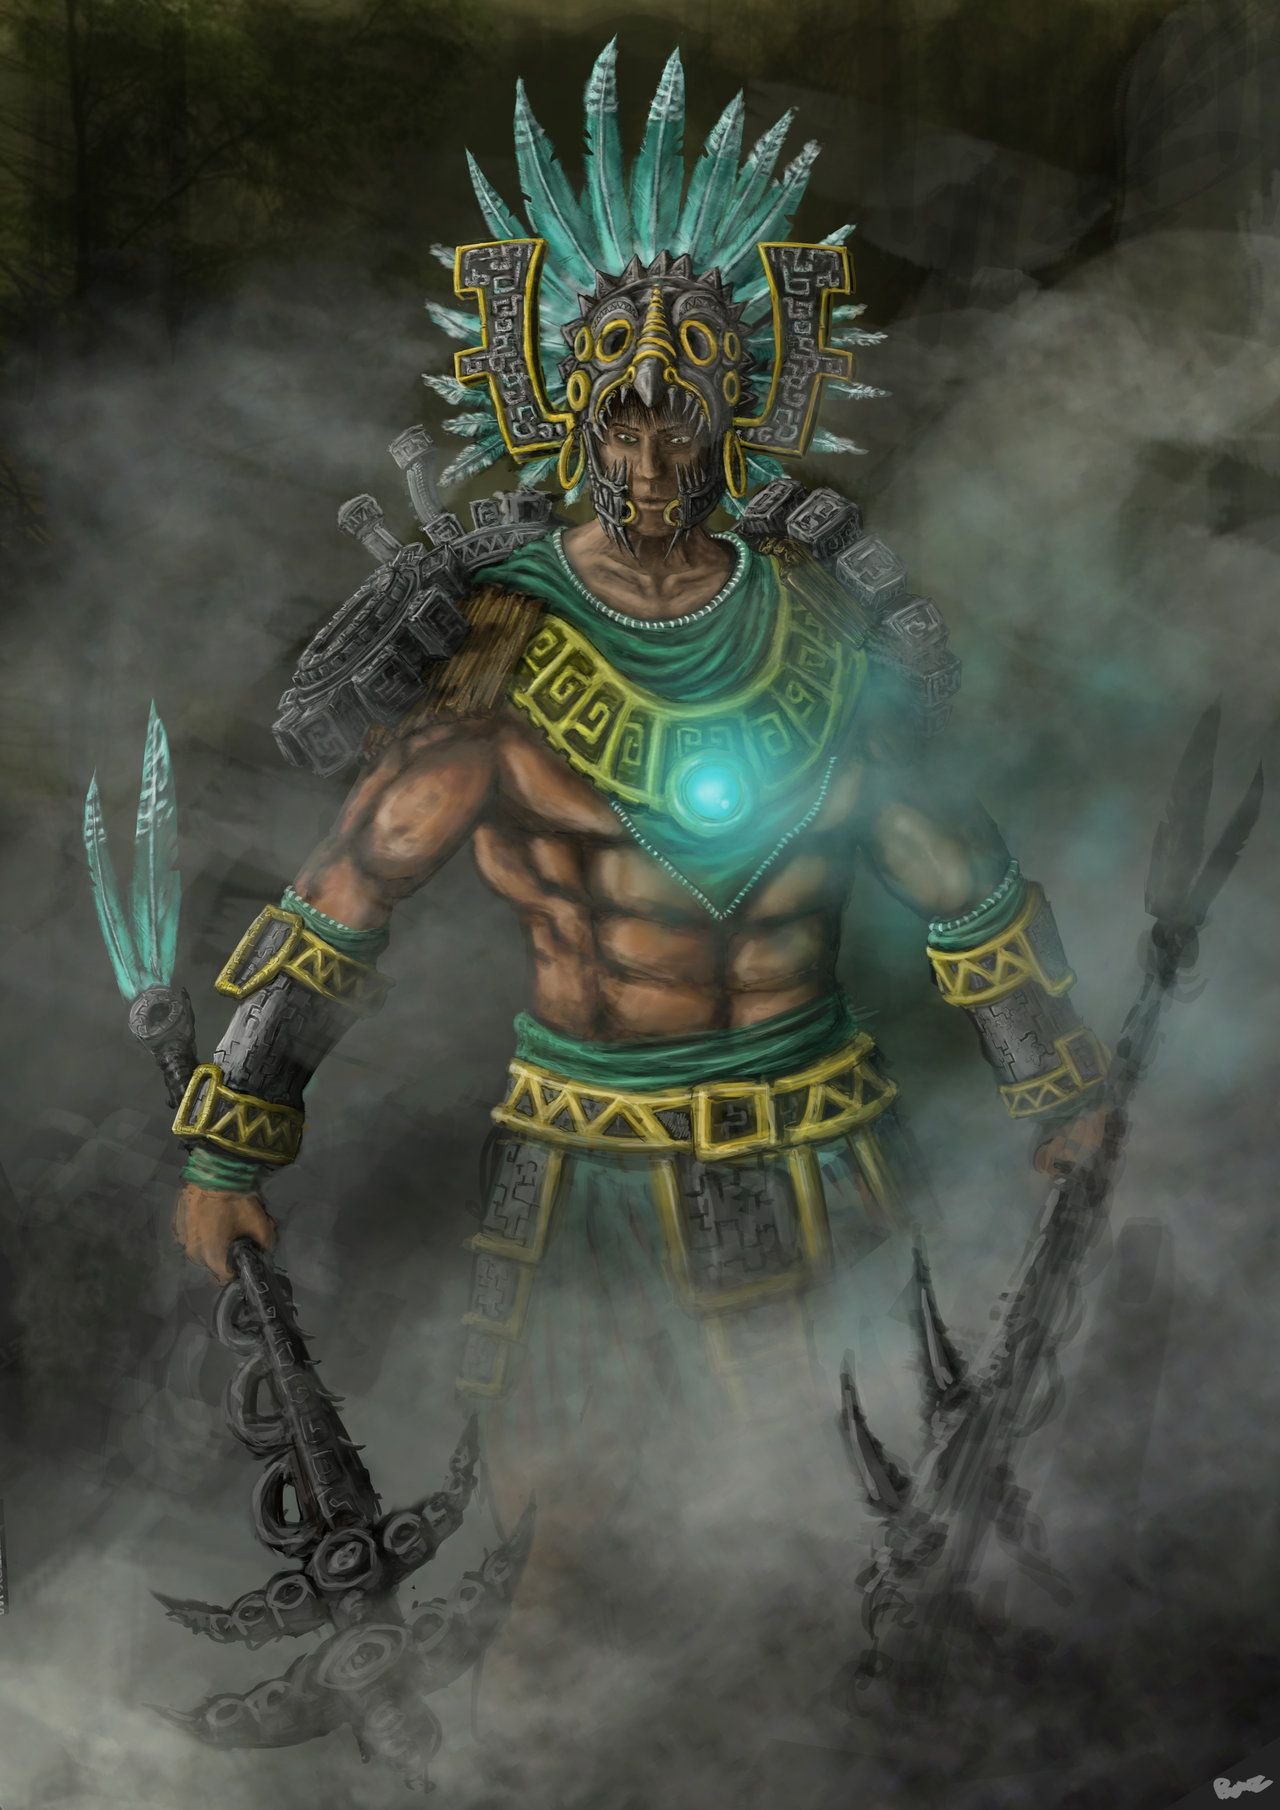 Aztec Warrior Wallpaper Google Search Resources Pinterest